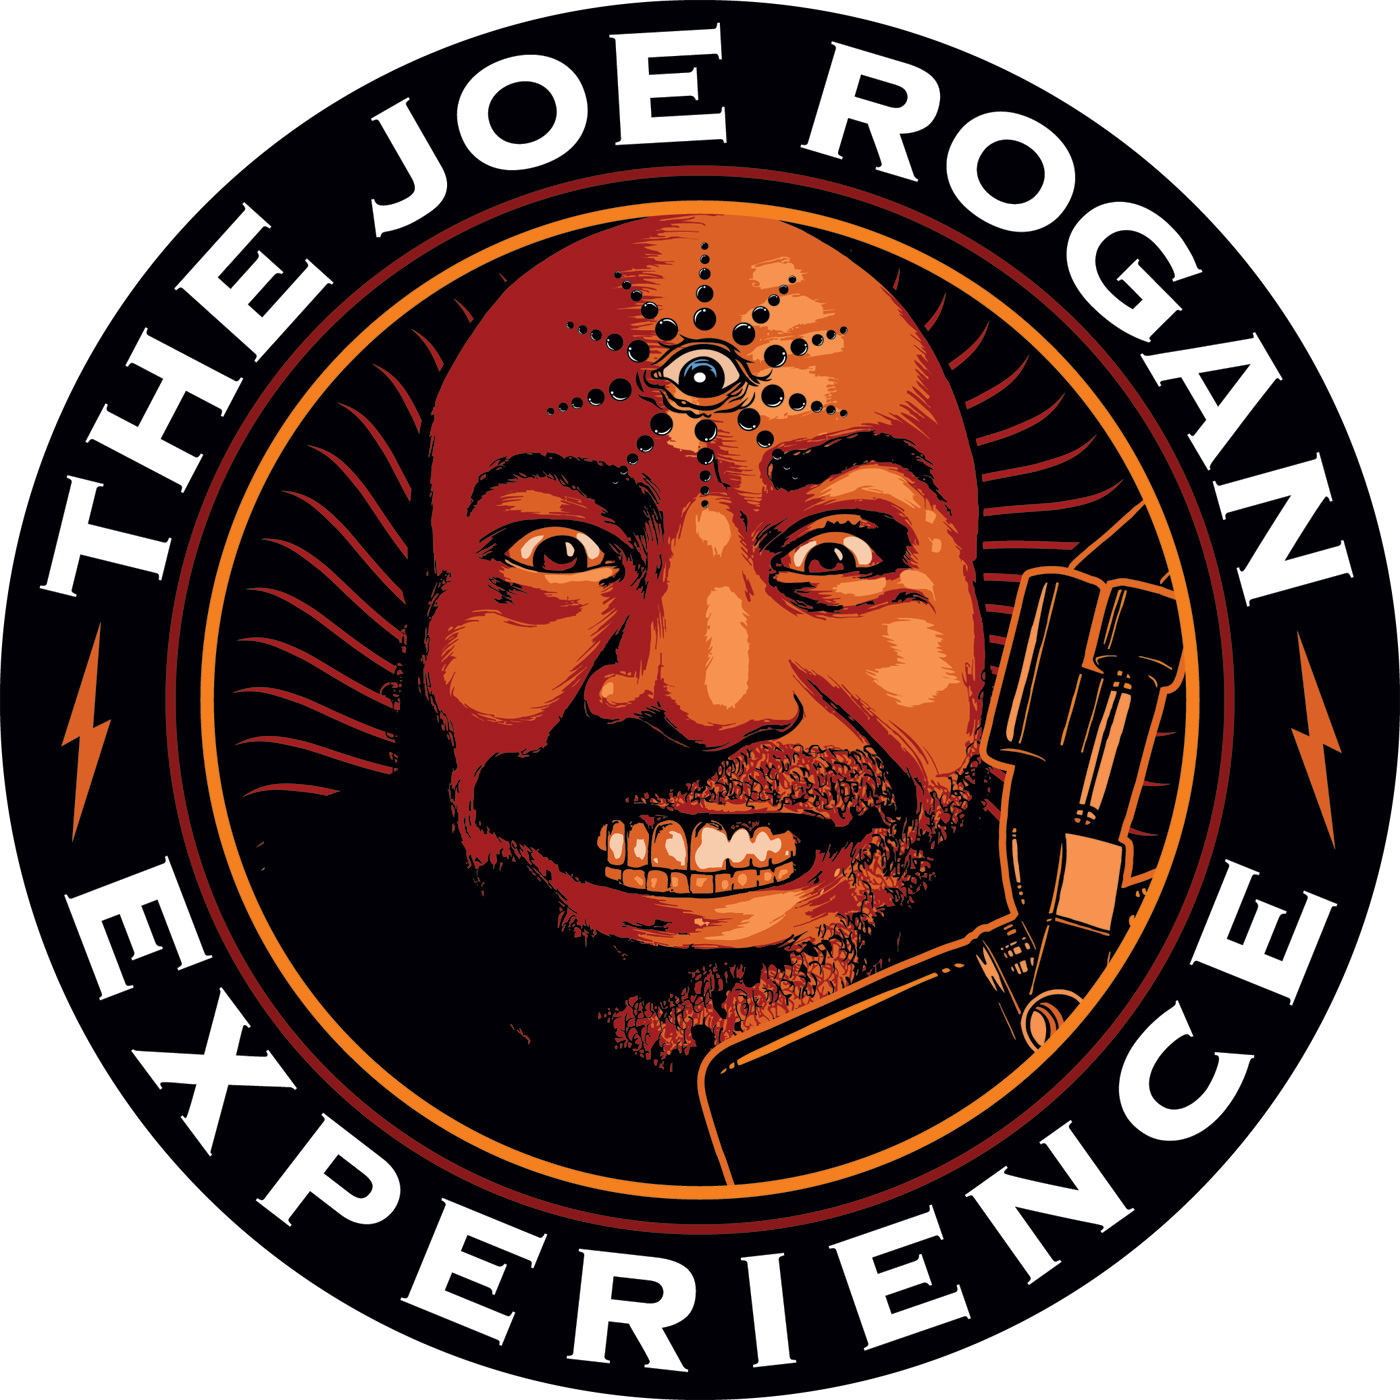 The Joe Rogan Experience PODCAST #36 - Eddie Bravo, Brian Redban